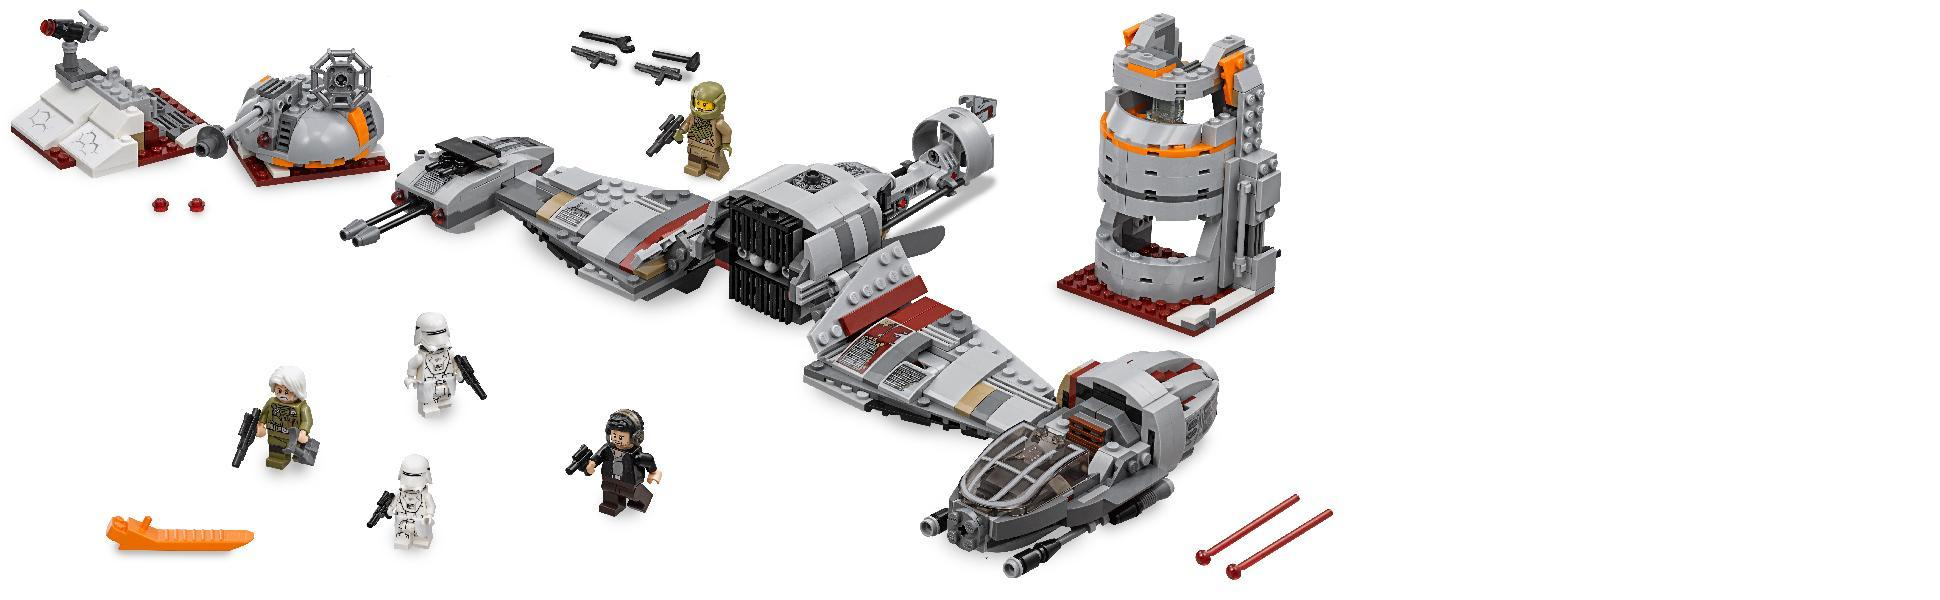 Lego star wars defense on crait 75202 lego - Lego star wars 1 2 3 4 5 6 ...